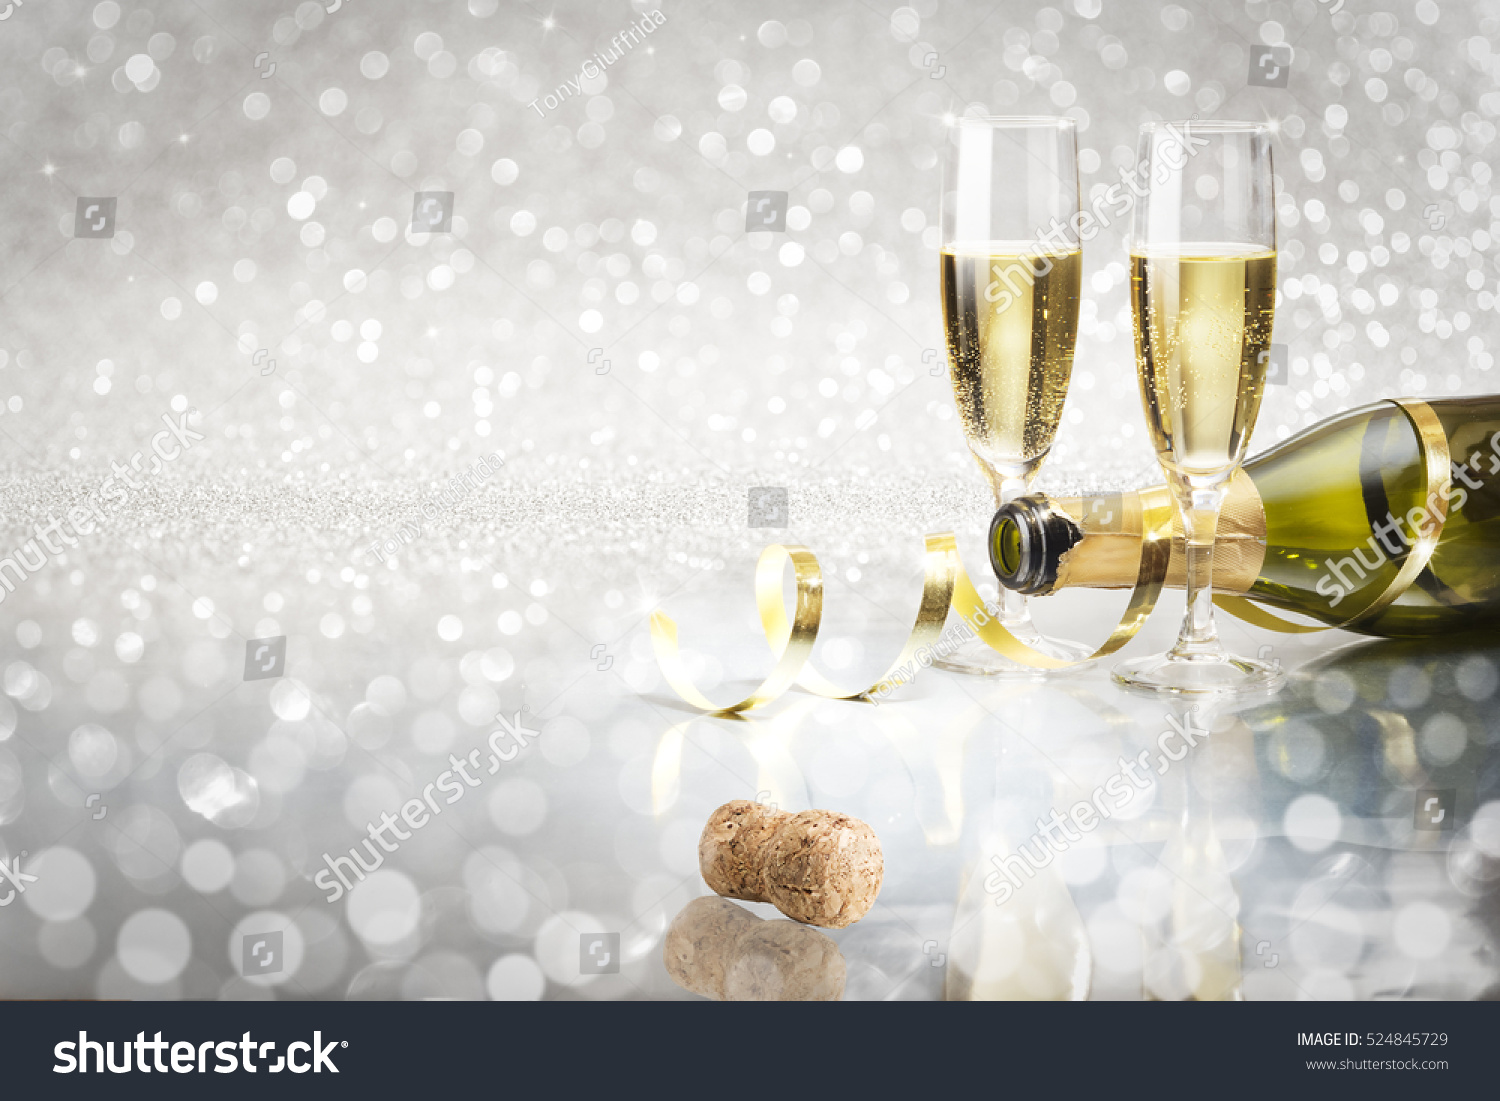 toast champagne new year silver background flutes